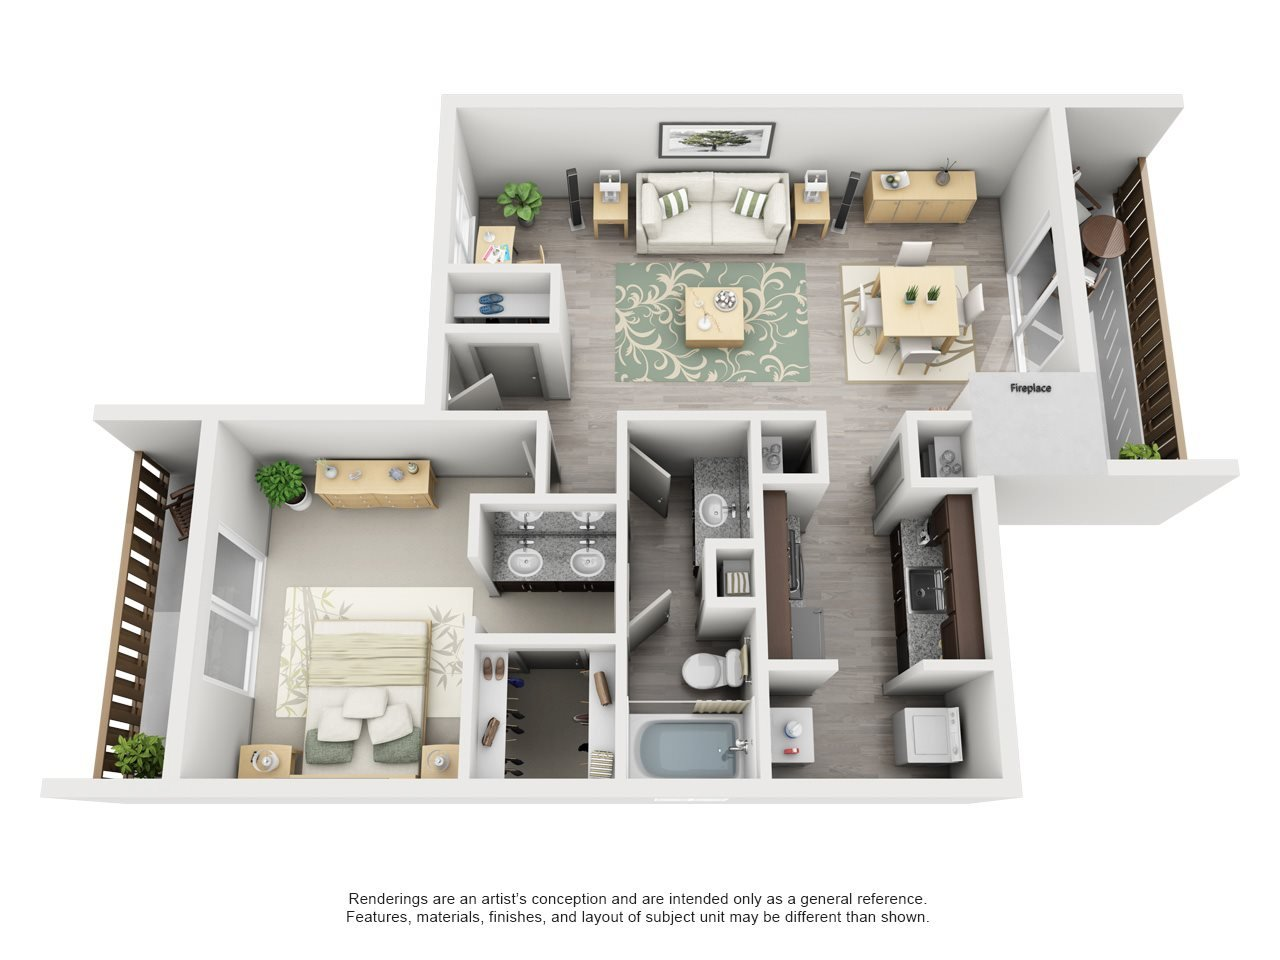 Maxwell Townhomes - 1 Bedroom 1 Bath Townhome